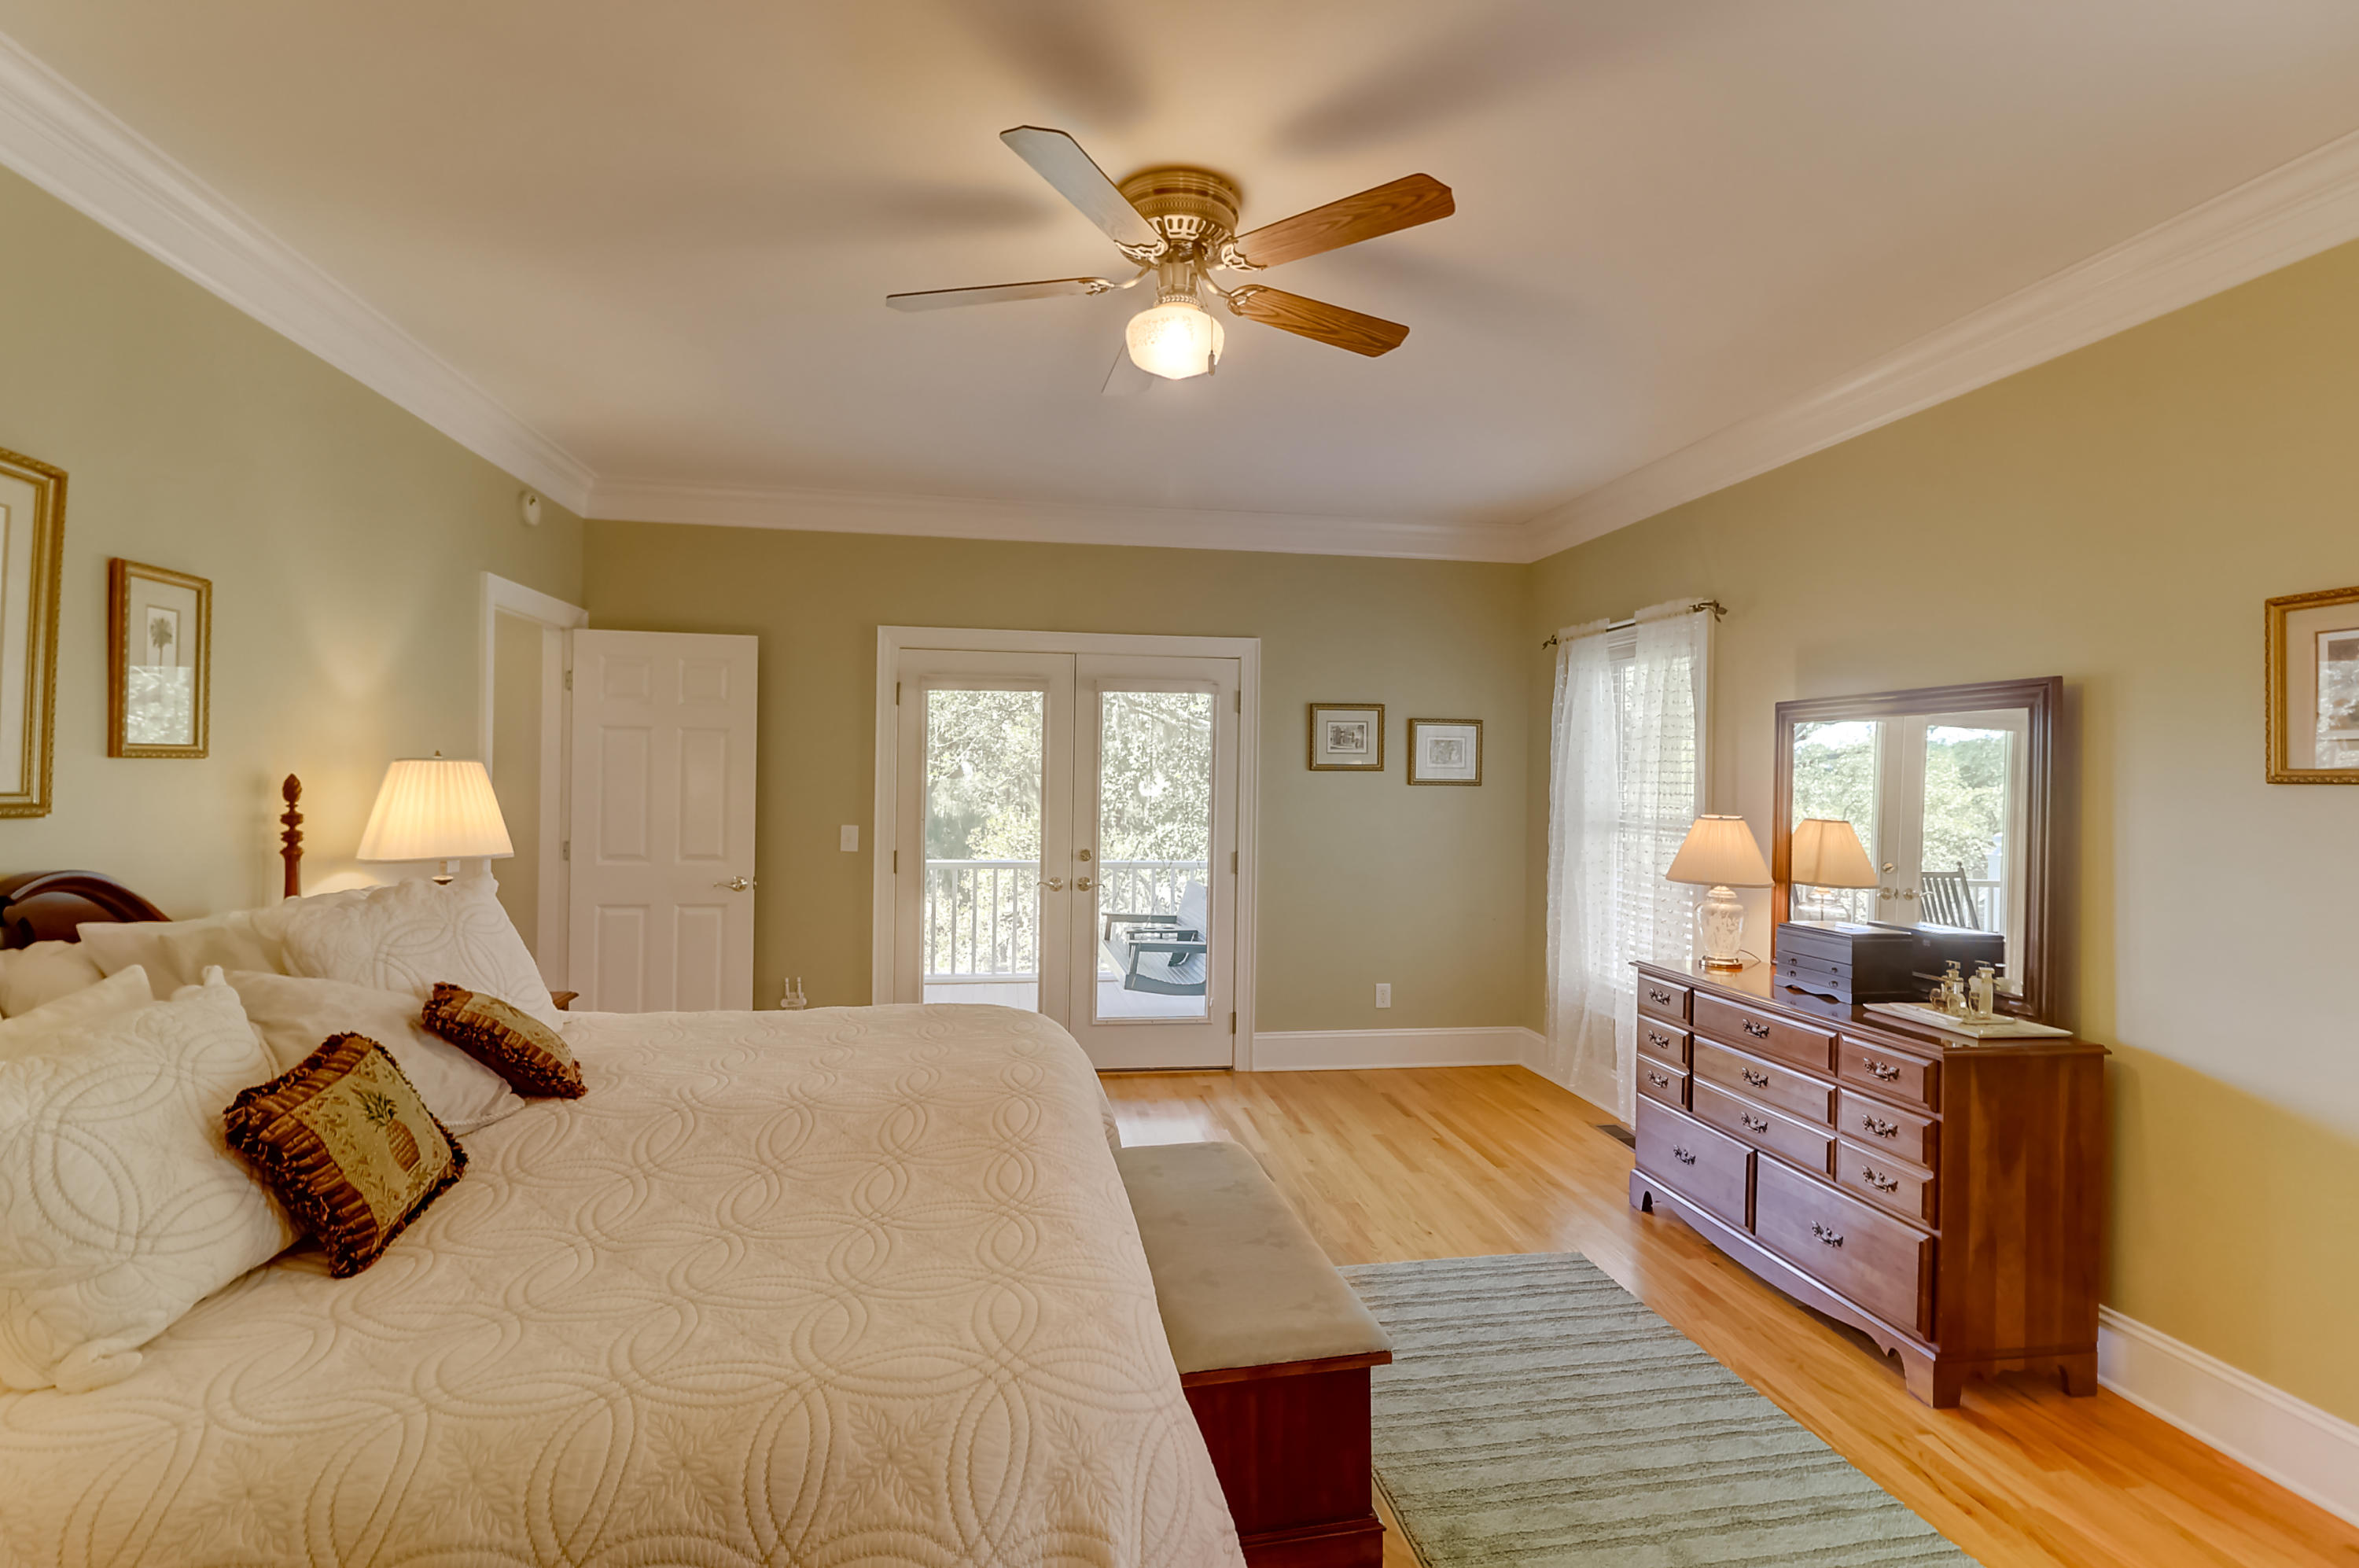 Stratton Place Homes For Sale - 1494 Stratton, Mount Pleasant, SC - 5